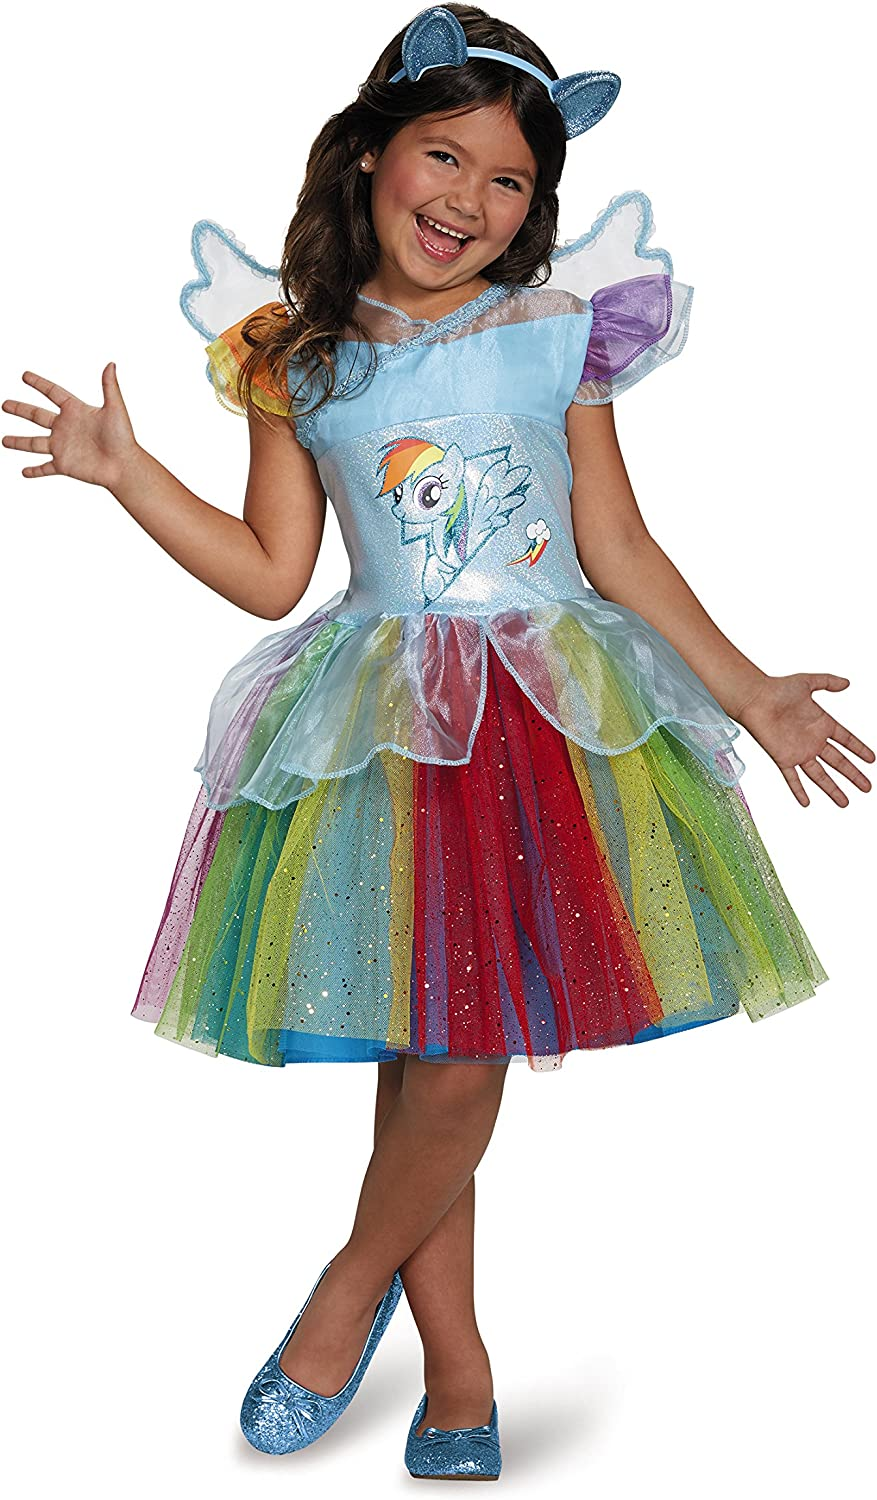 Disguise Rainbow Dash Tutu Deluxe My Little Pony Costume, XSmall 3T4T by Disguise